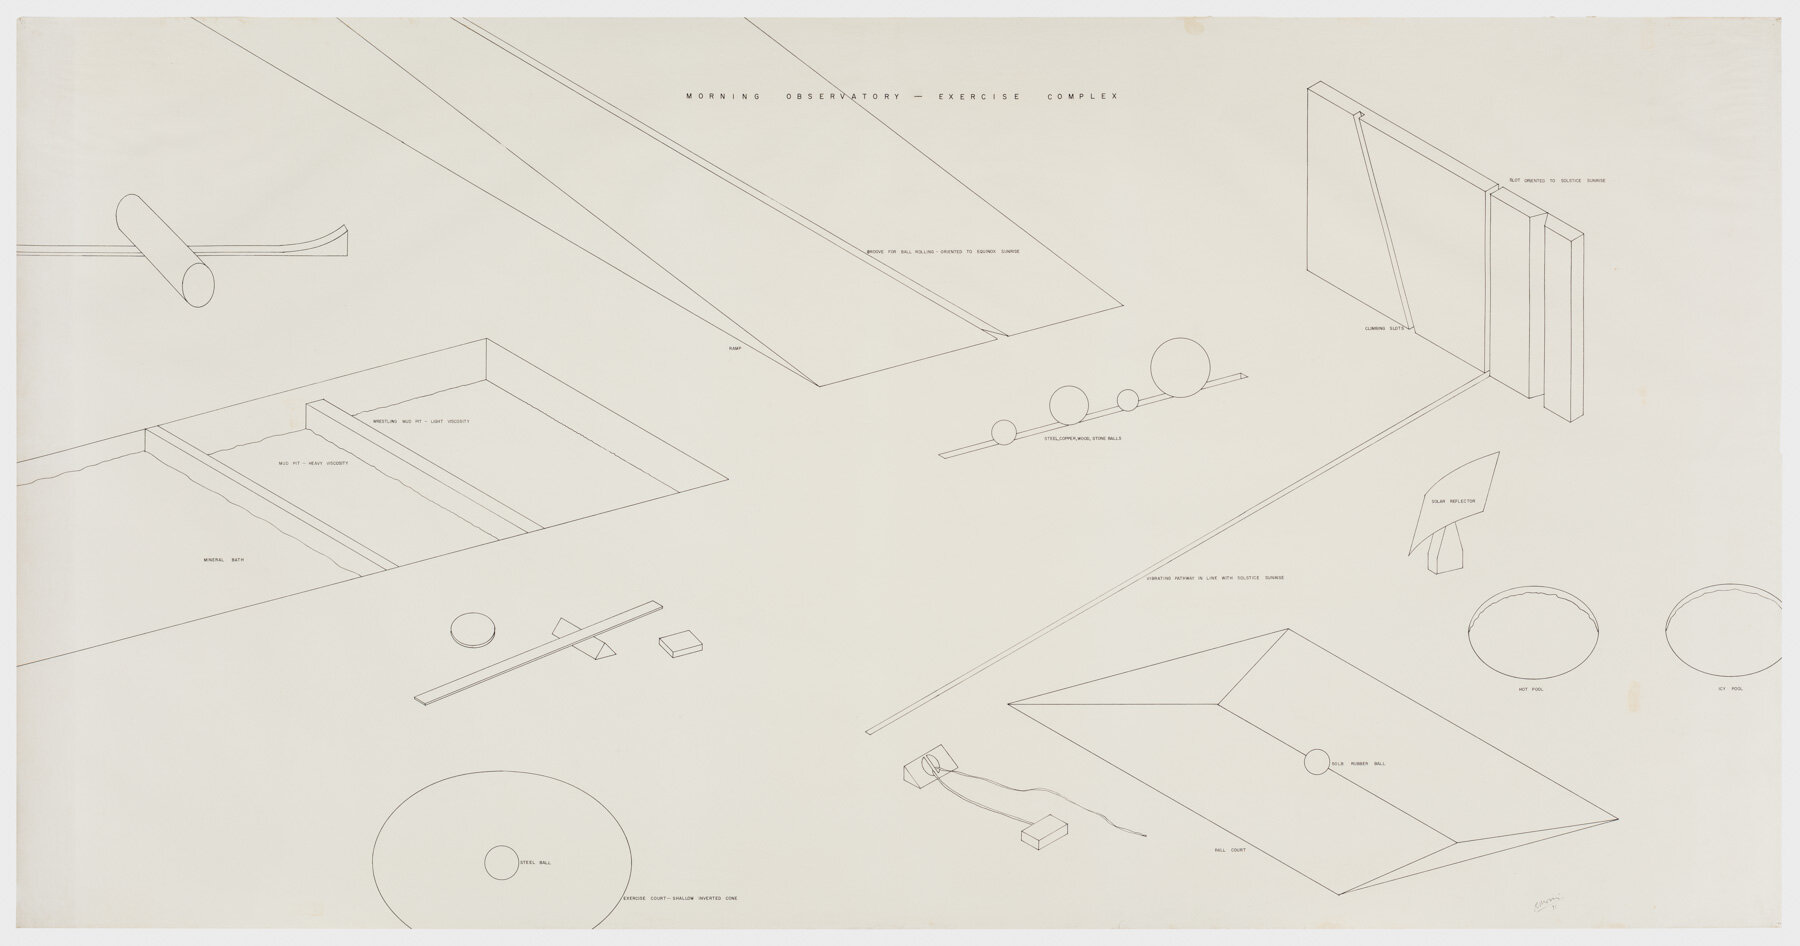 Robert Morris.  Morning Observatory  Exercise Complex , 1971. Ink on paper, 42 x 82 ½ in. (107 x 210 cm). Estate of Robert Morris, courtesy Castelli Gallery, New York. © 2019 The Estate of Robert Morris / Artists Rights Society (ARS), New York. Photo: Stan Narten